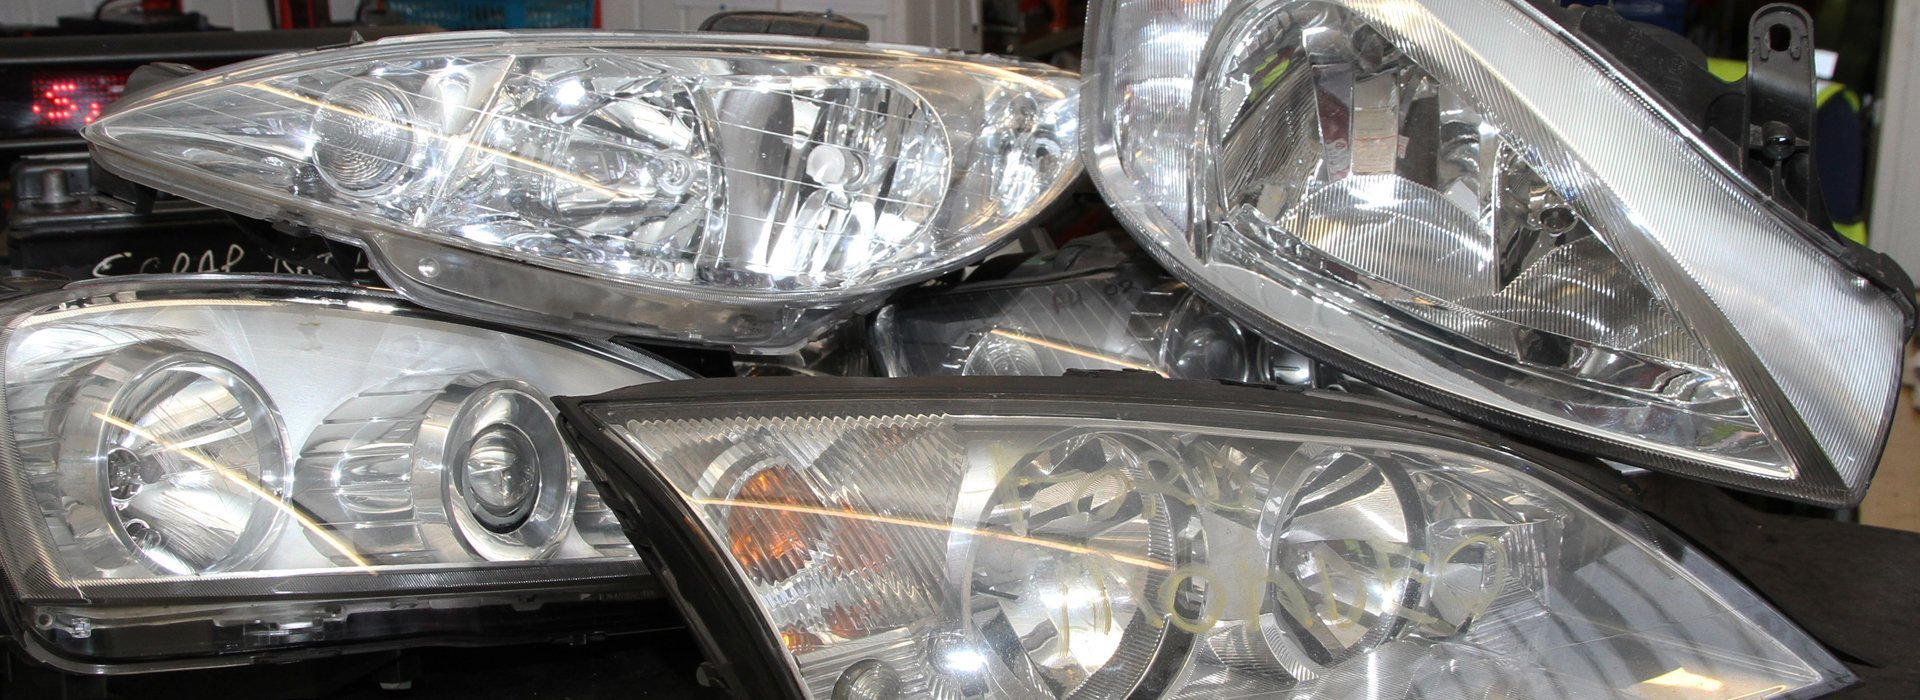 car headlights scrapped